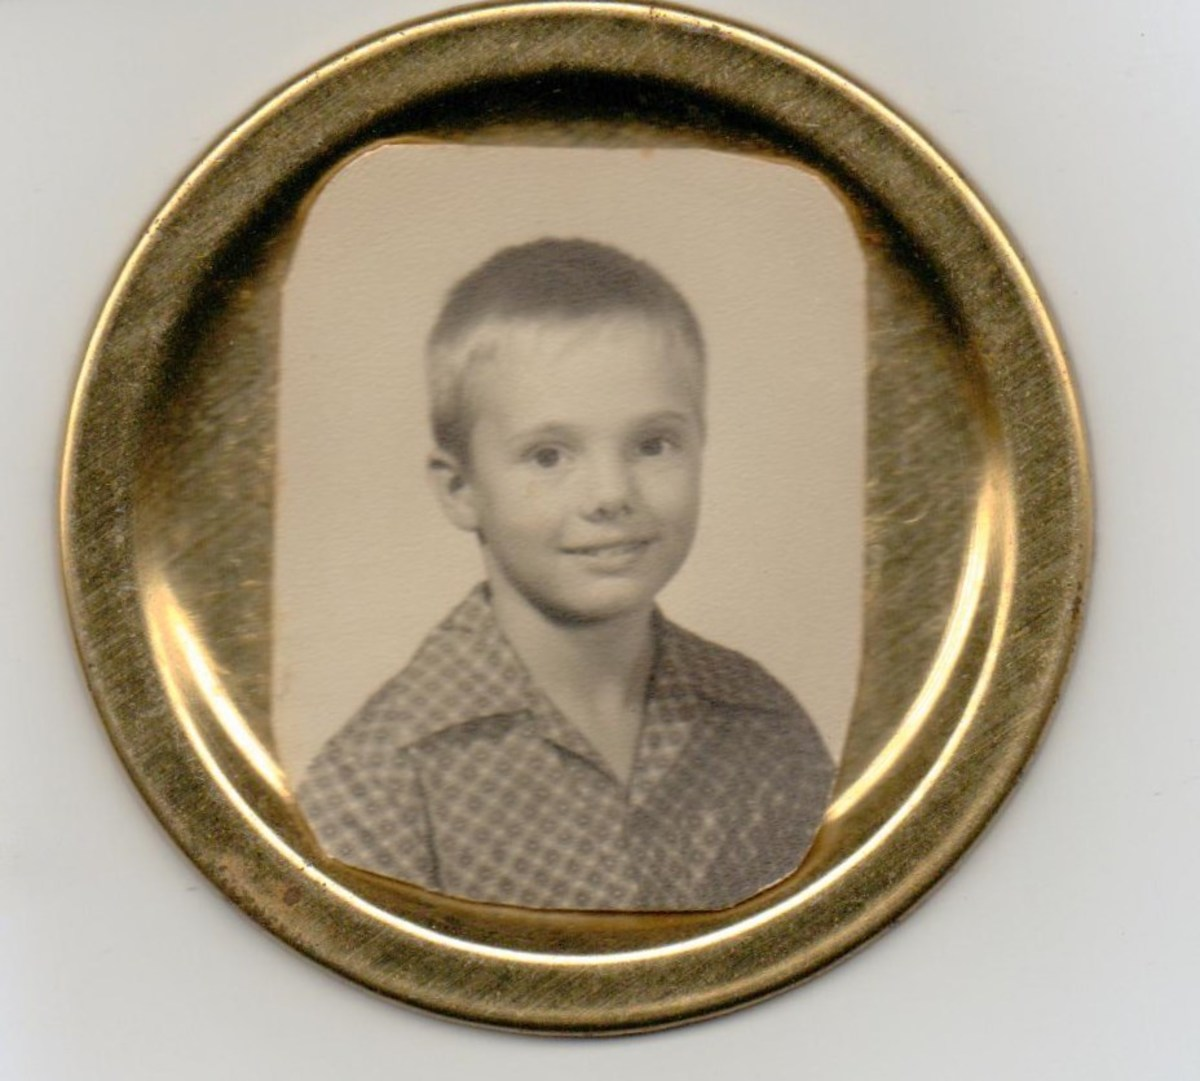 Here Mom used a school photo of my older brother glued to a canning jar lid.